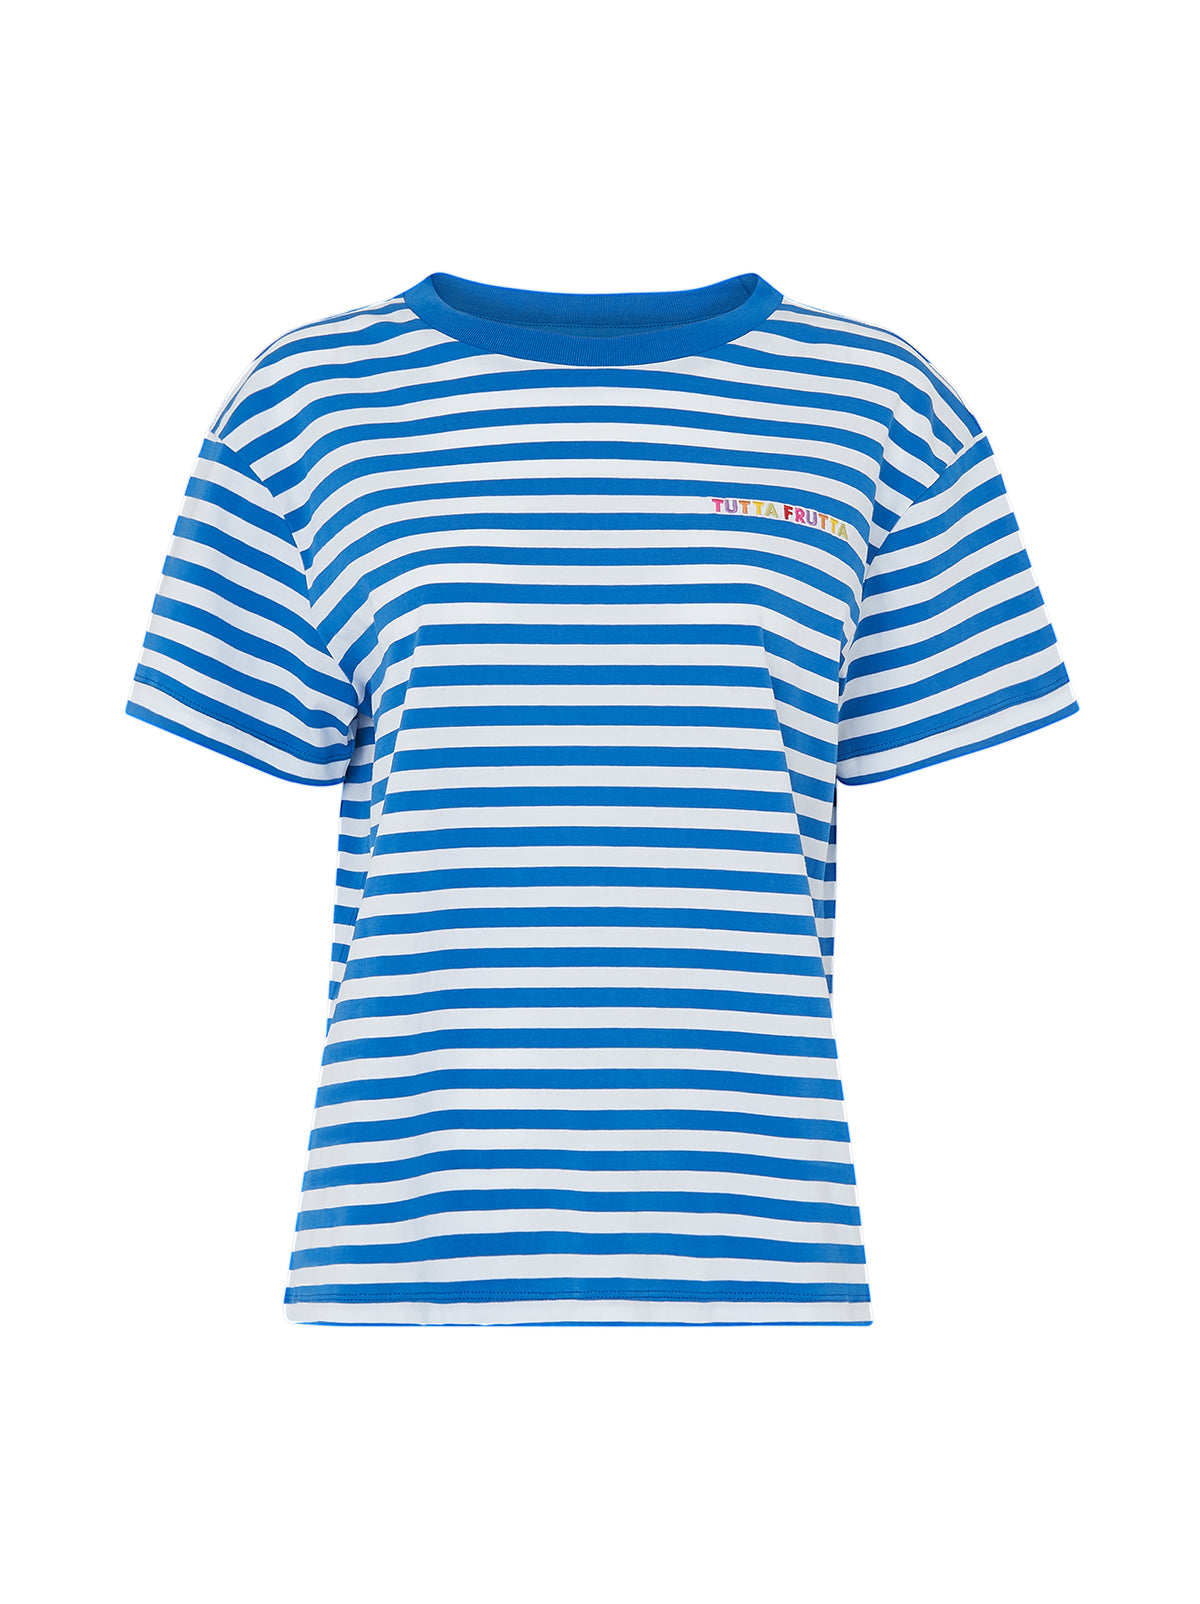 Tutta Frutta Blue Striped Cotton Short Sleeve T-shirt by KITRI Studio